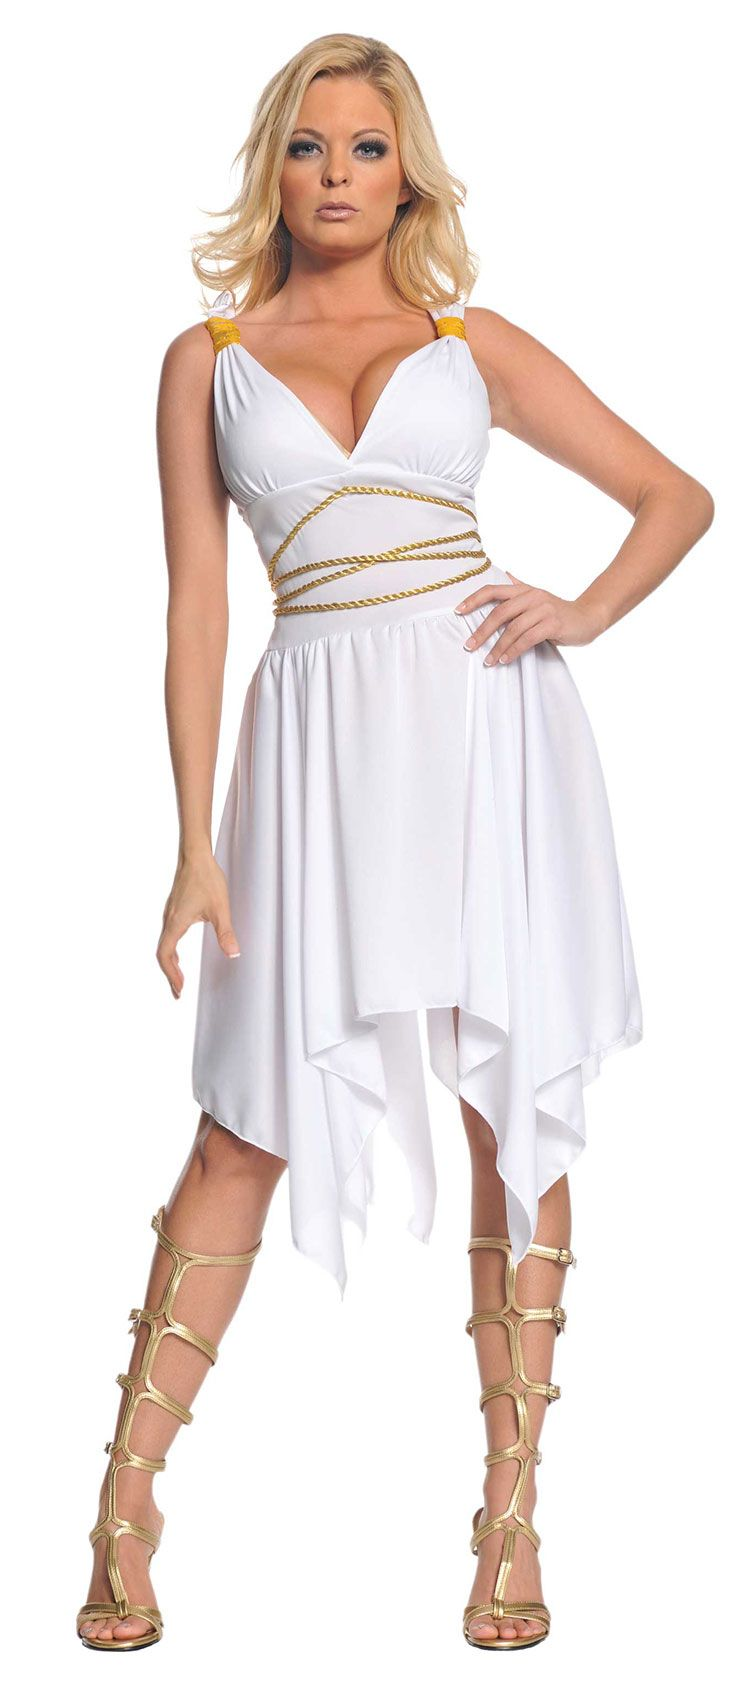 Greek Costumes For Women | Sexy Greek Goddess Costume - Greek and Roman Costumes  sc 1 st  Pinterest & Greek Costumes For Women | Sexy Greek Goddess Costume - Greek and ...